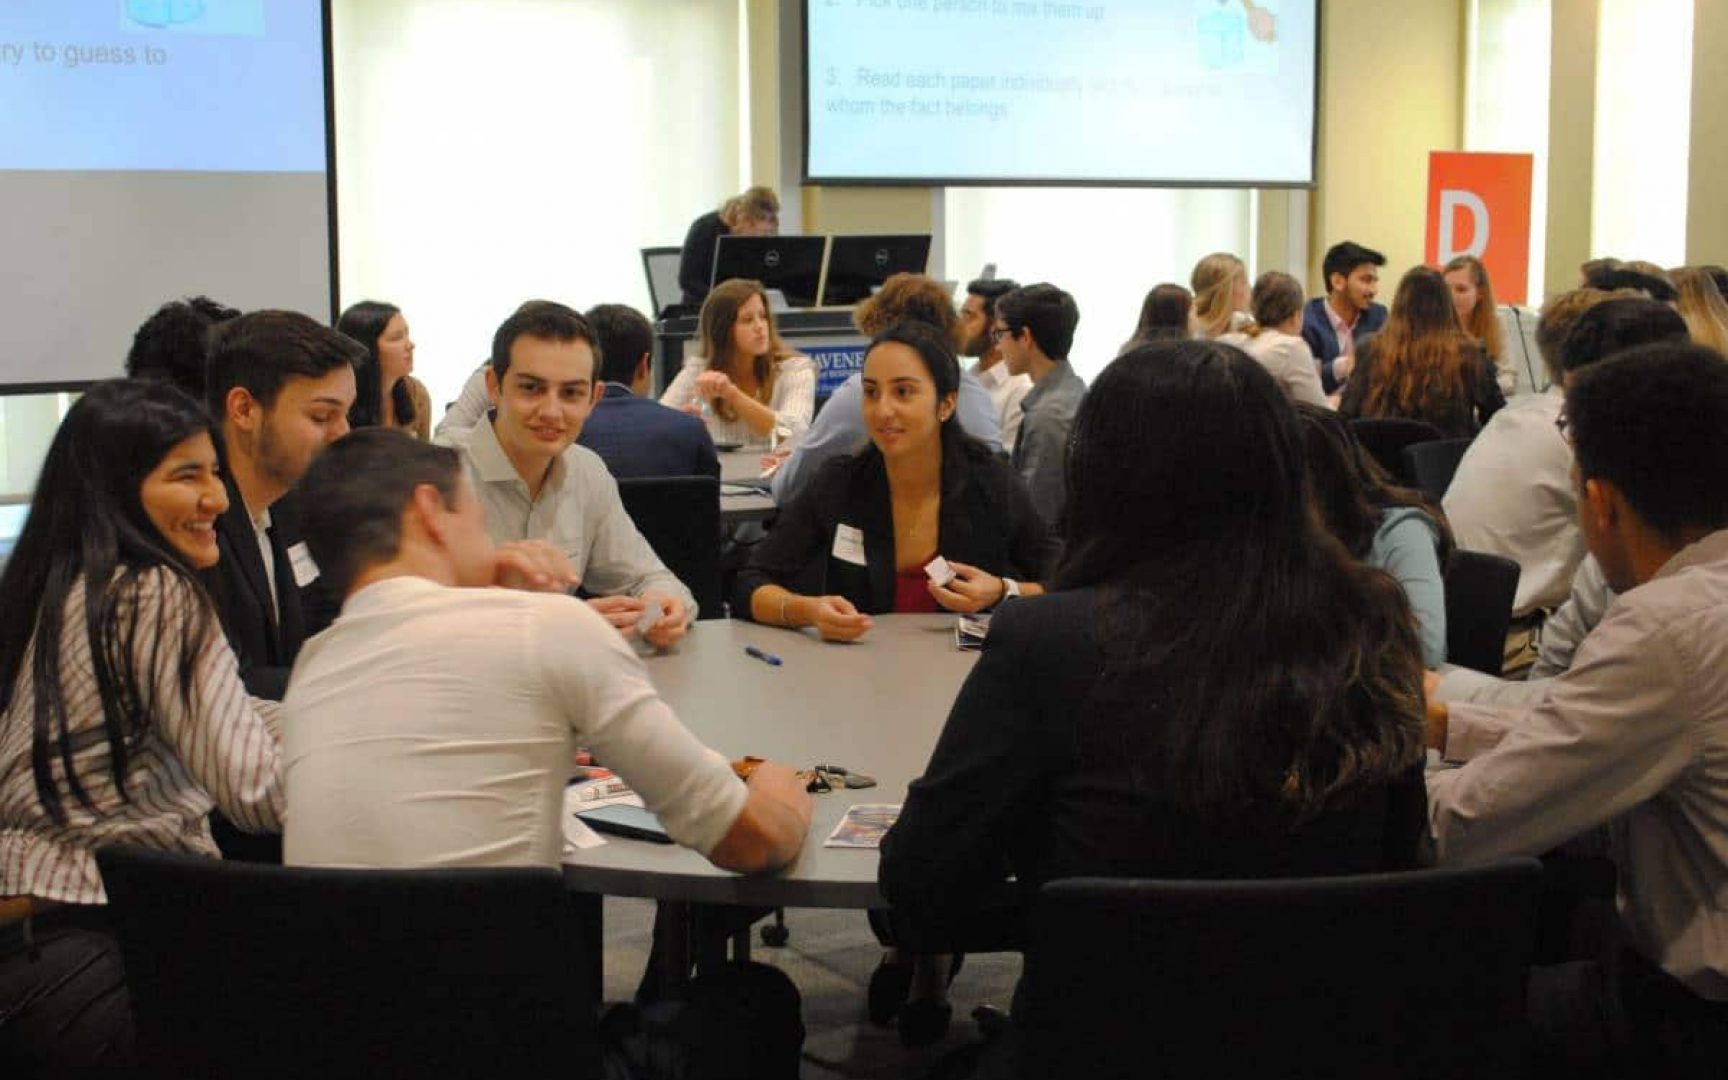 Group of students sitting at a round table talking